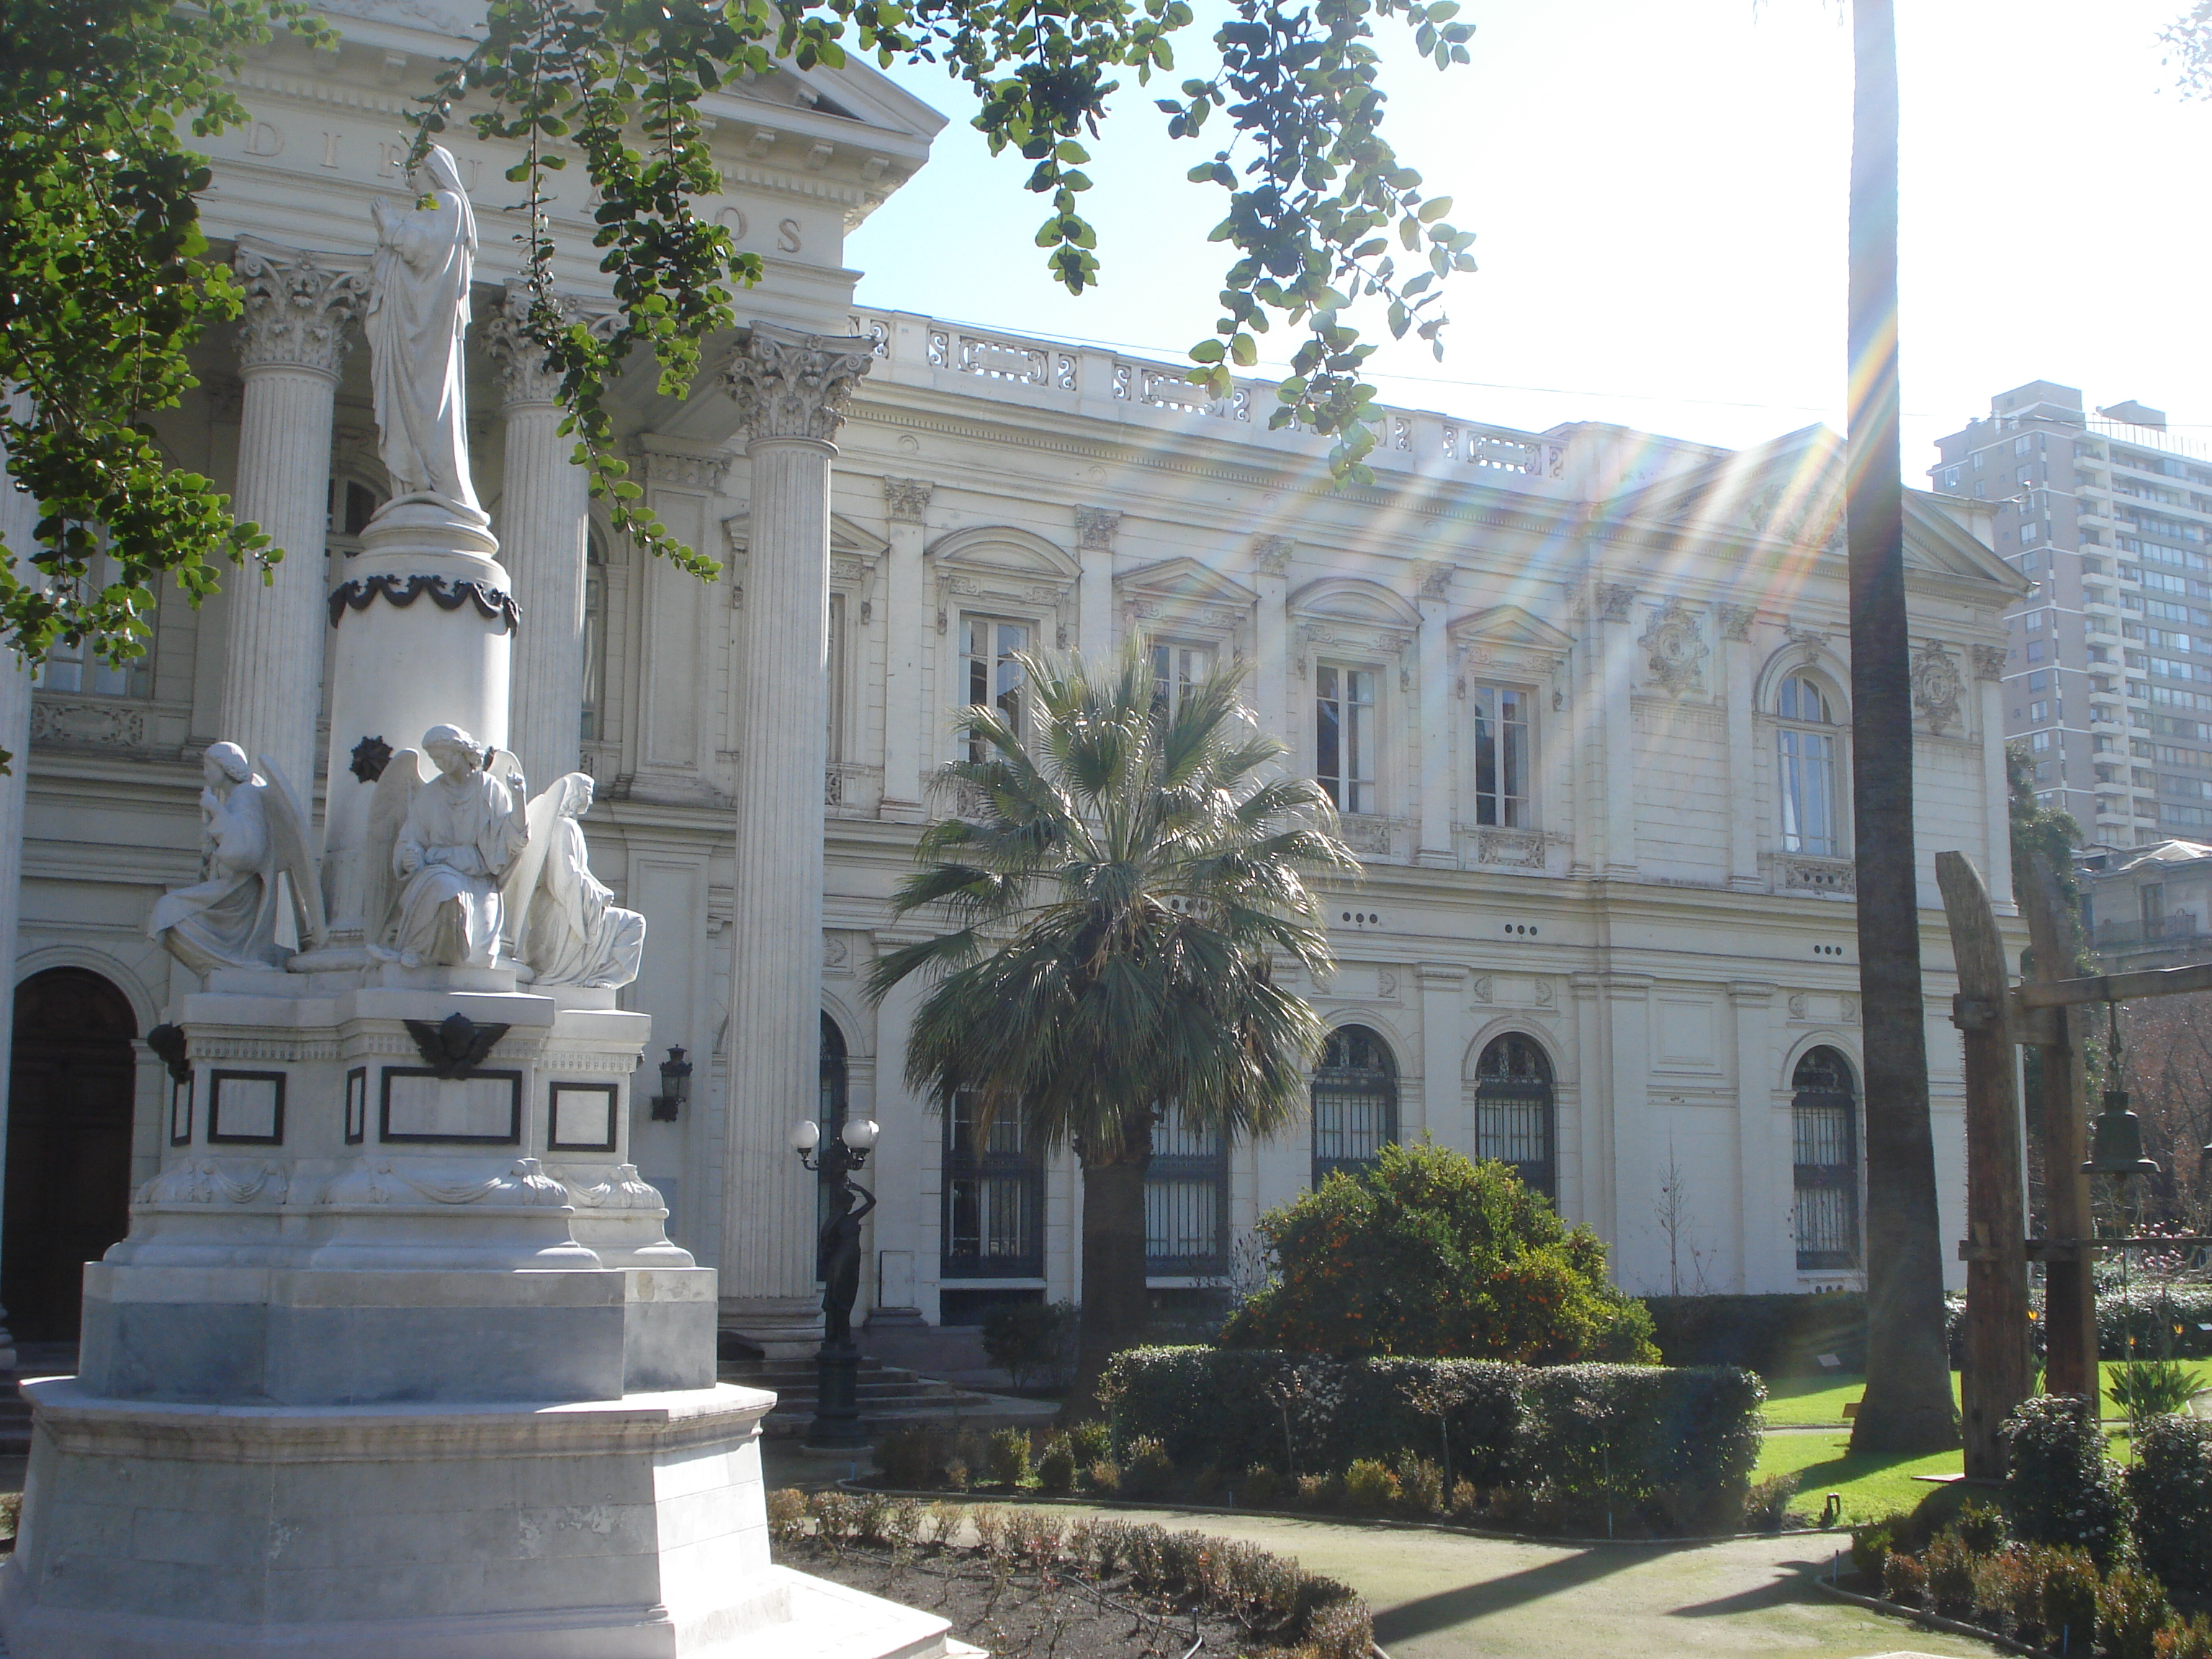 Chile's Congressional building, one of the historical buildings seen on the city tour